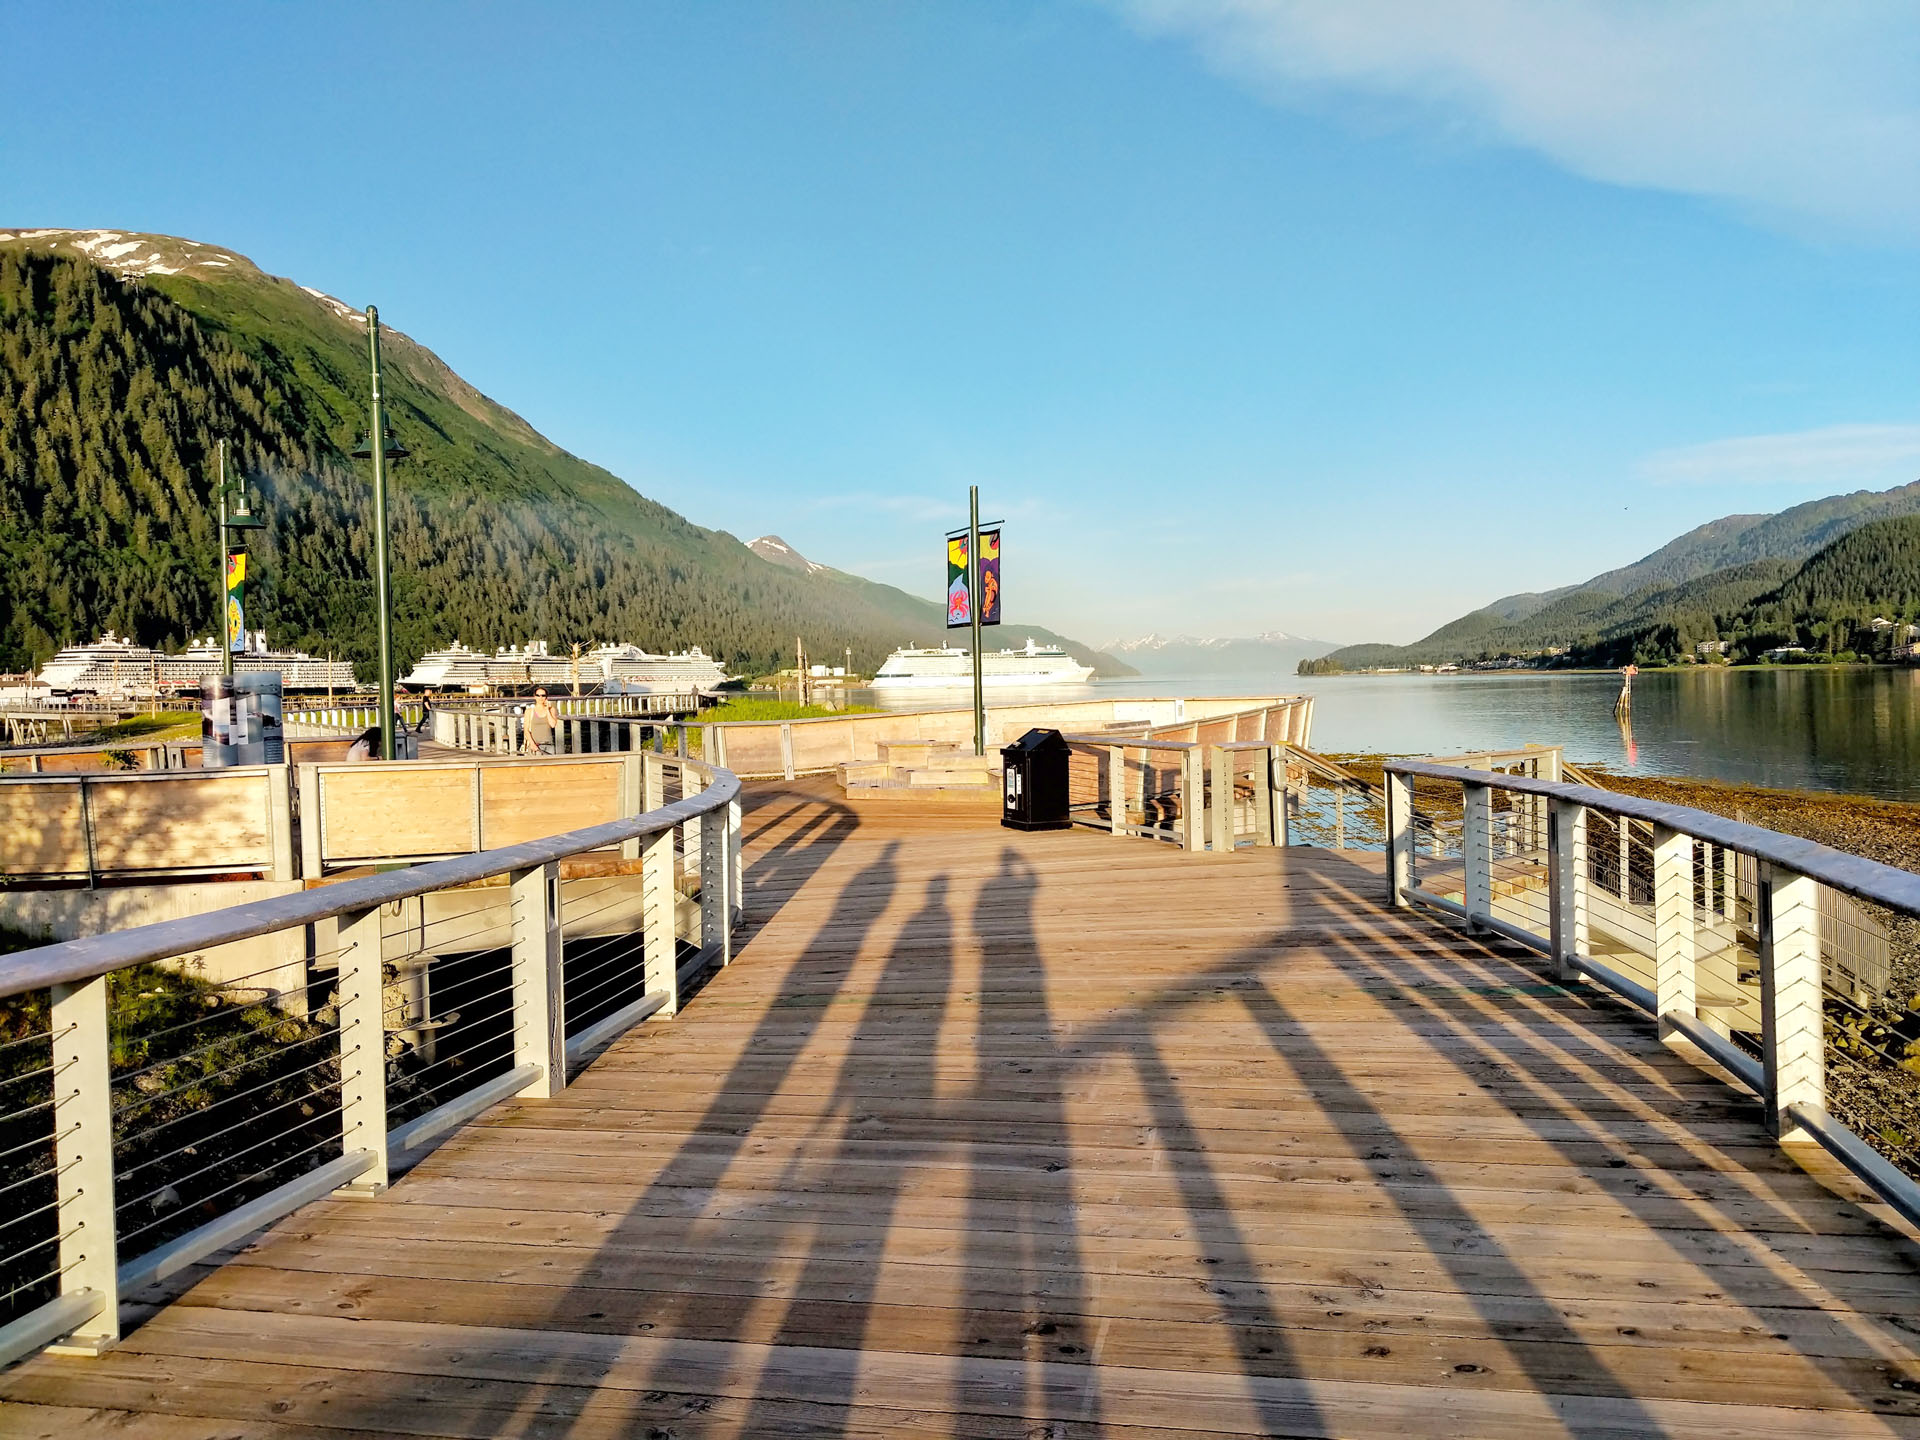 A picture containing sky, outdoor, seawalk, pier